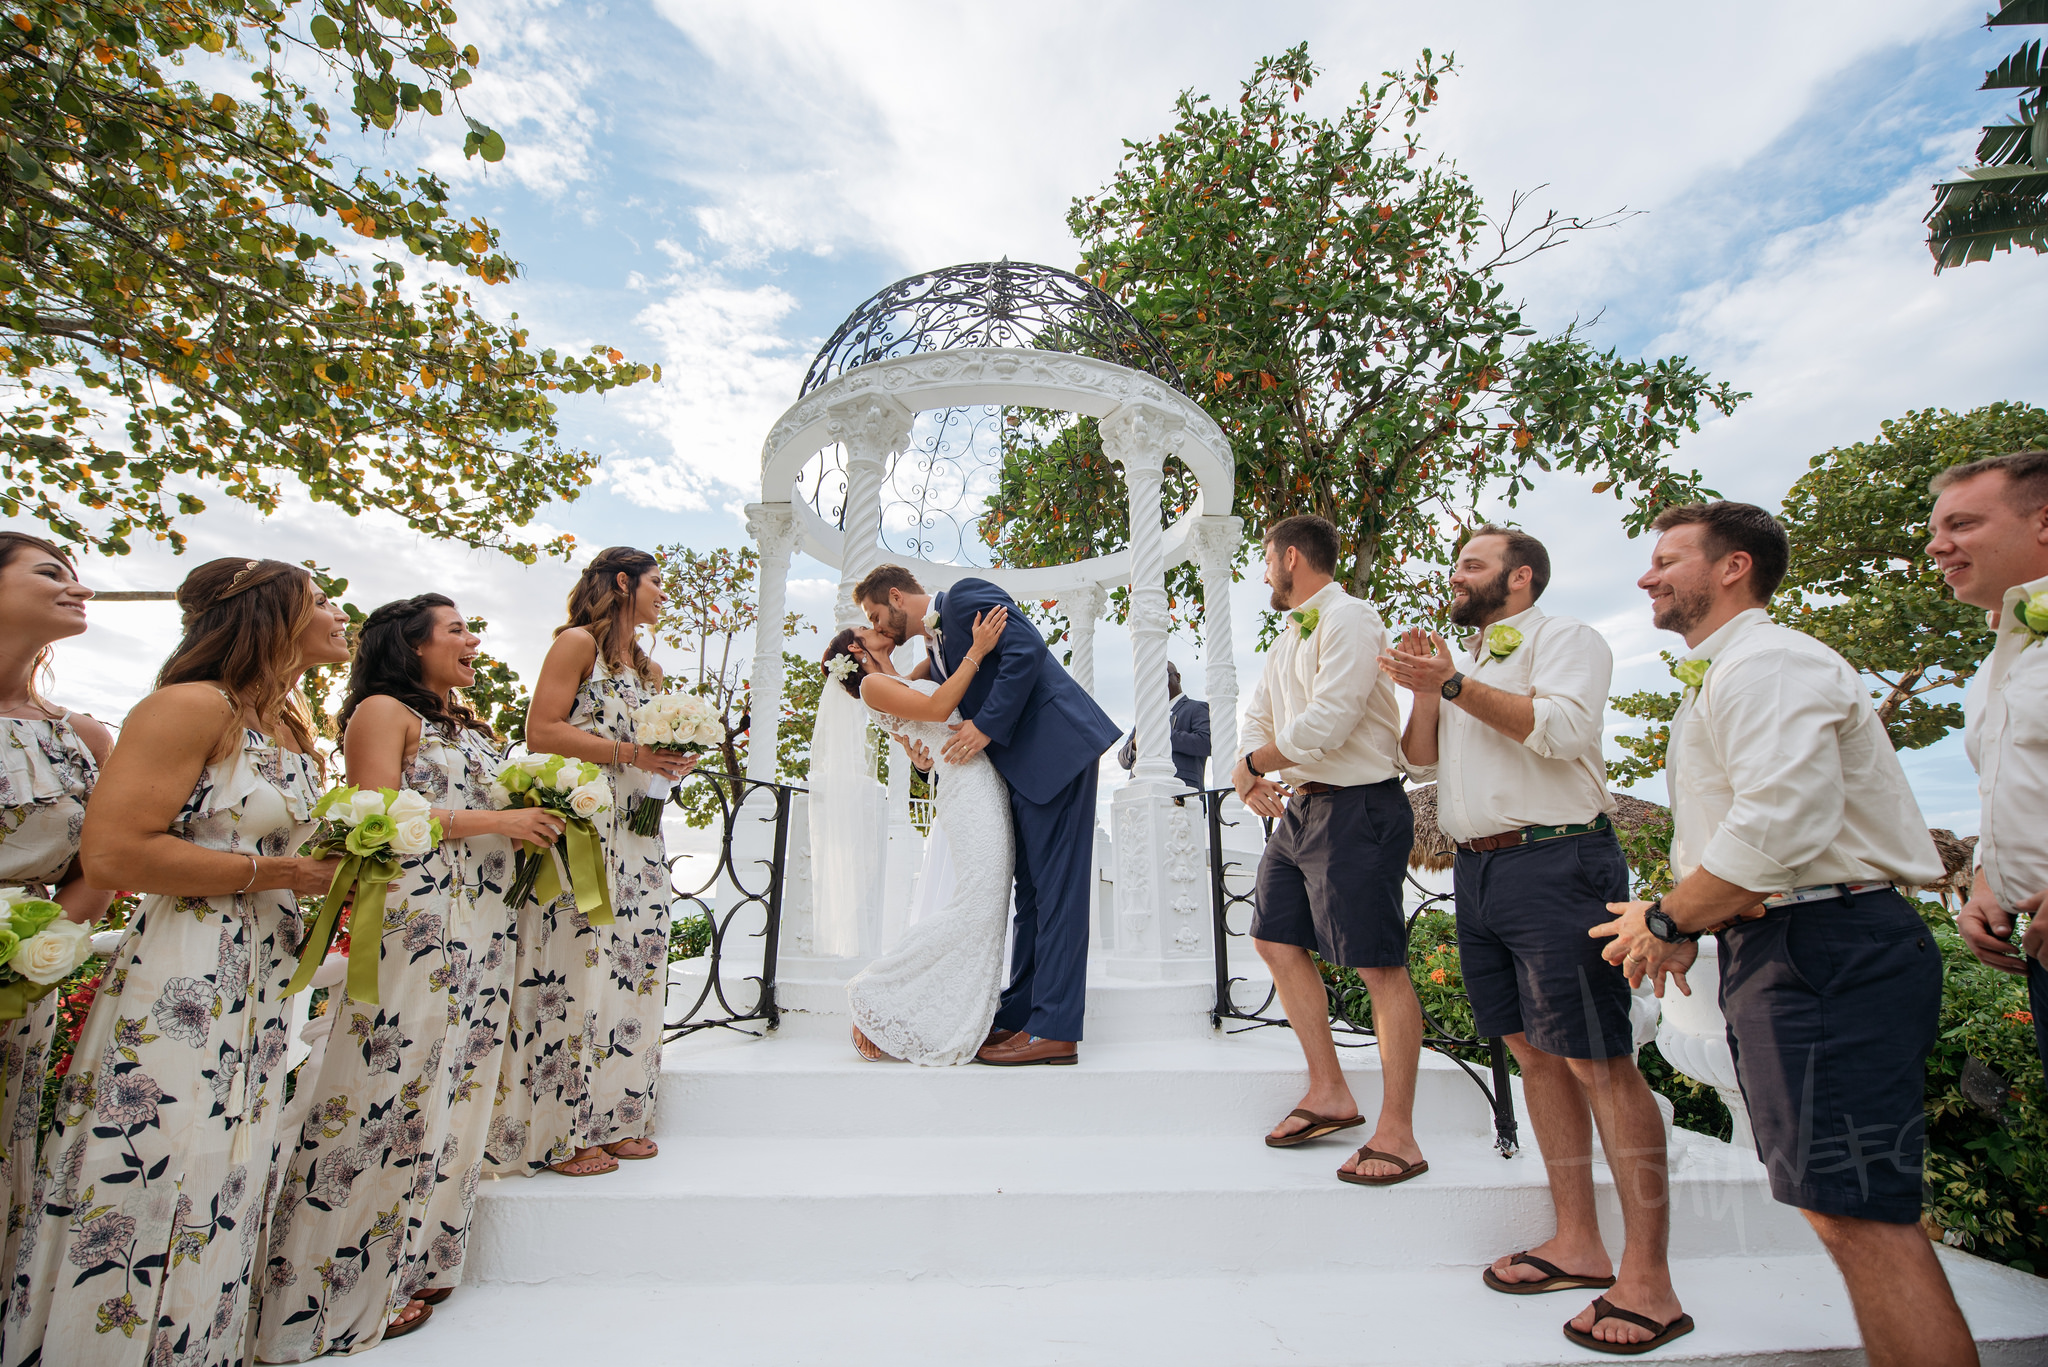 Lauren and Joey Gilkerson and 80 of their closest friends ventured down to Negril, Jamaica, took me with them, and oh - what a time it was! Here's their first kiss as husband and wife.